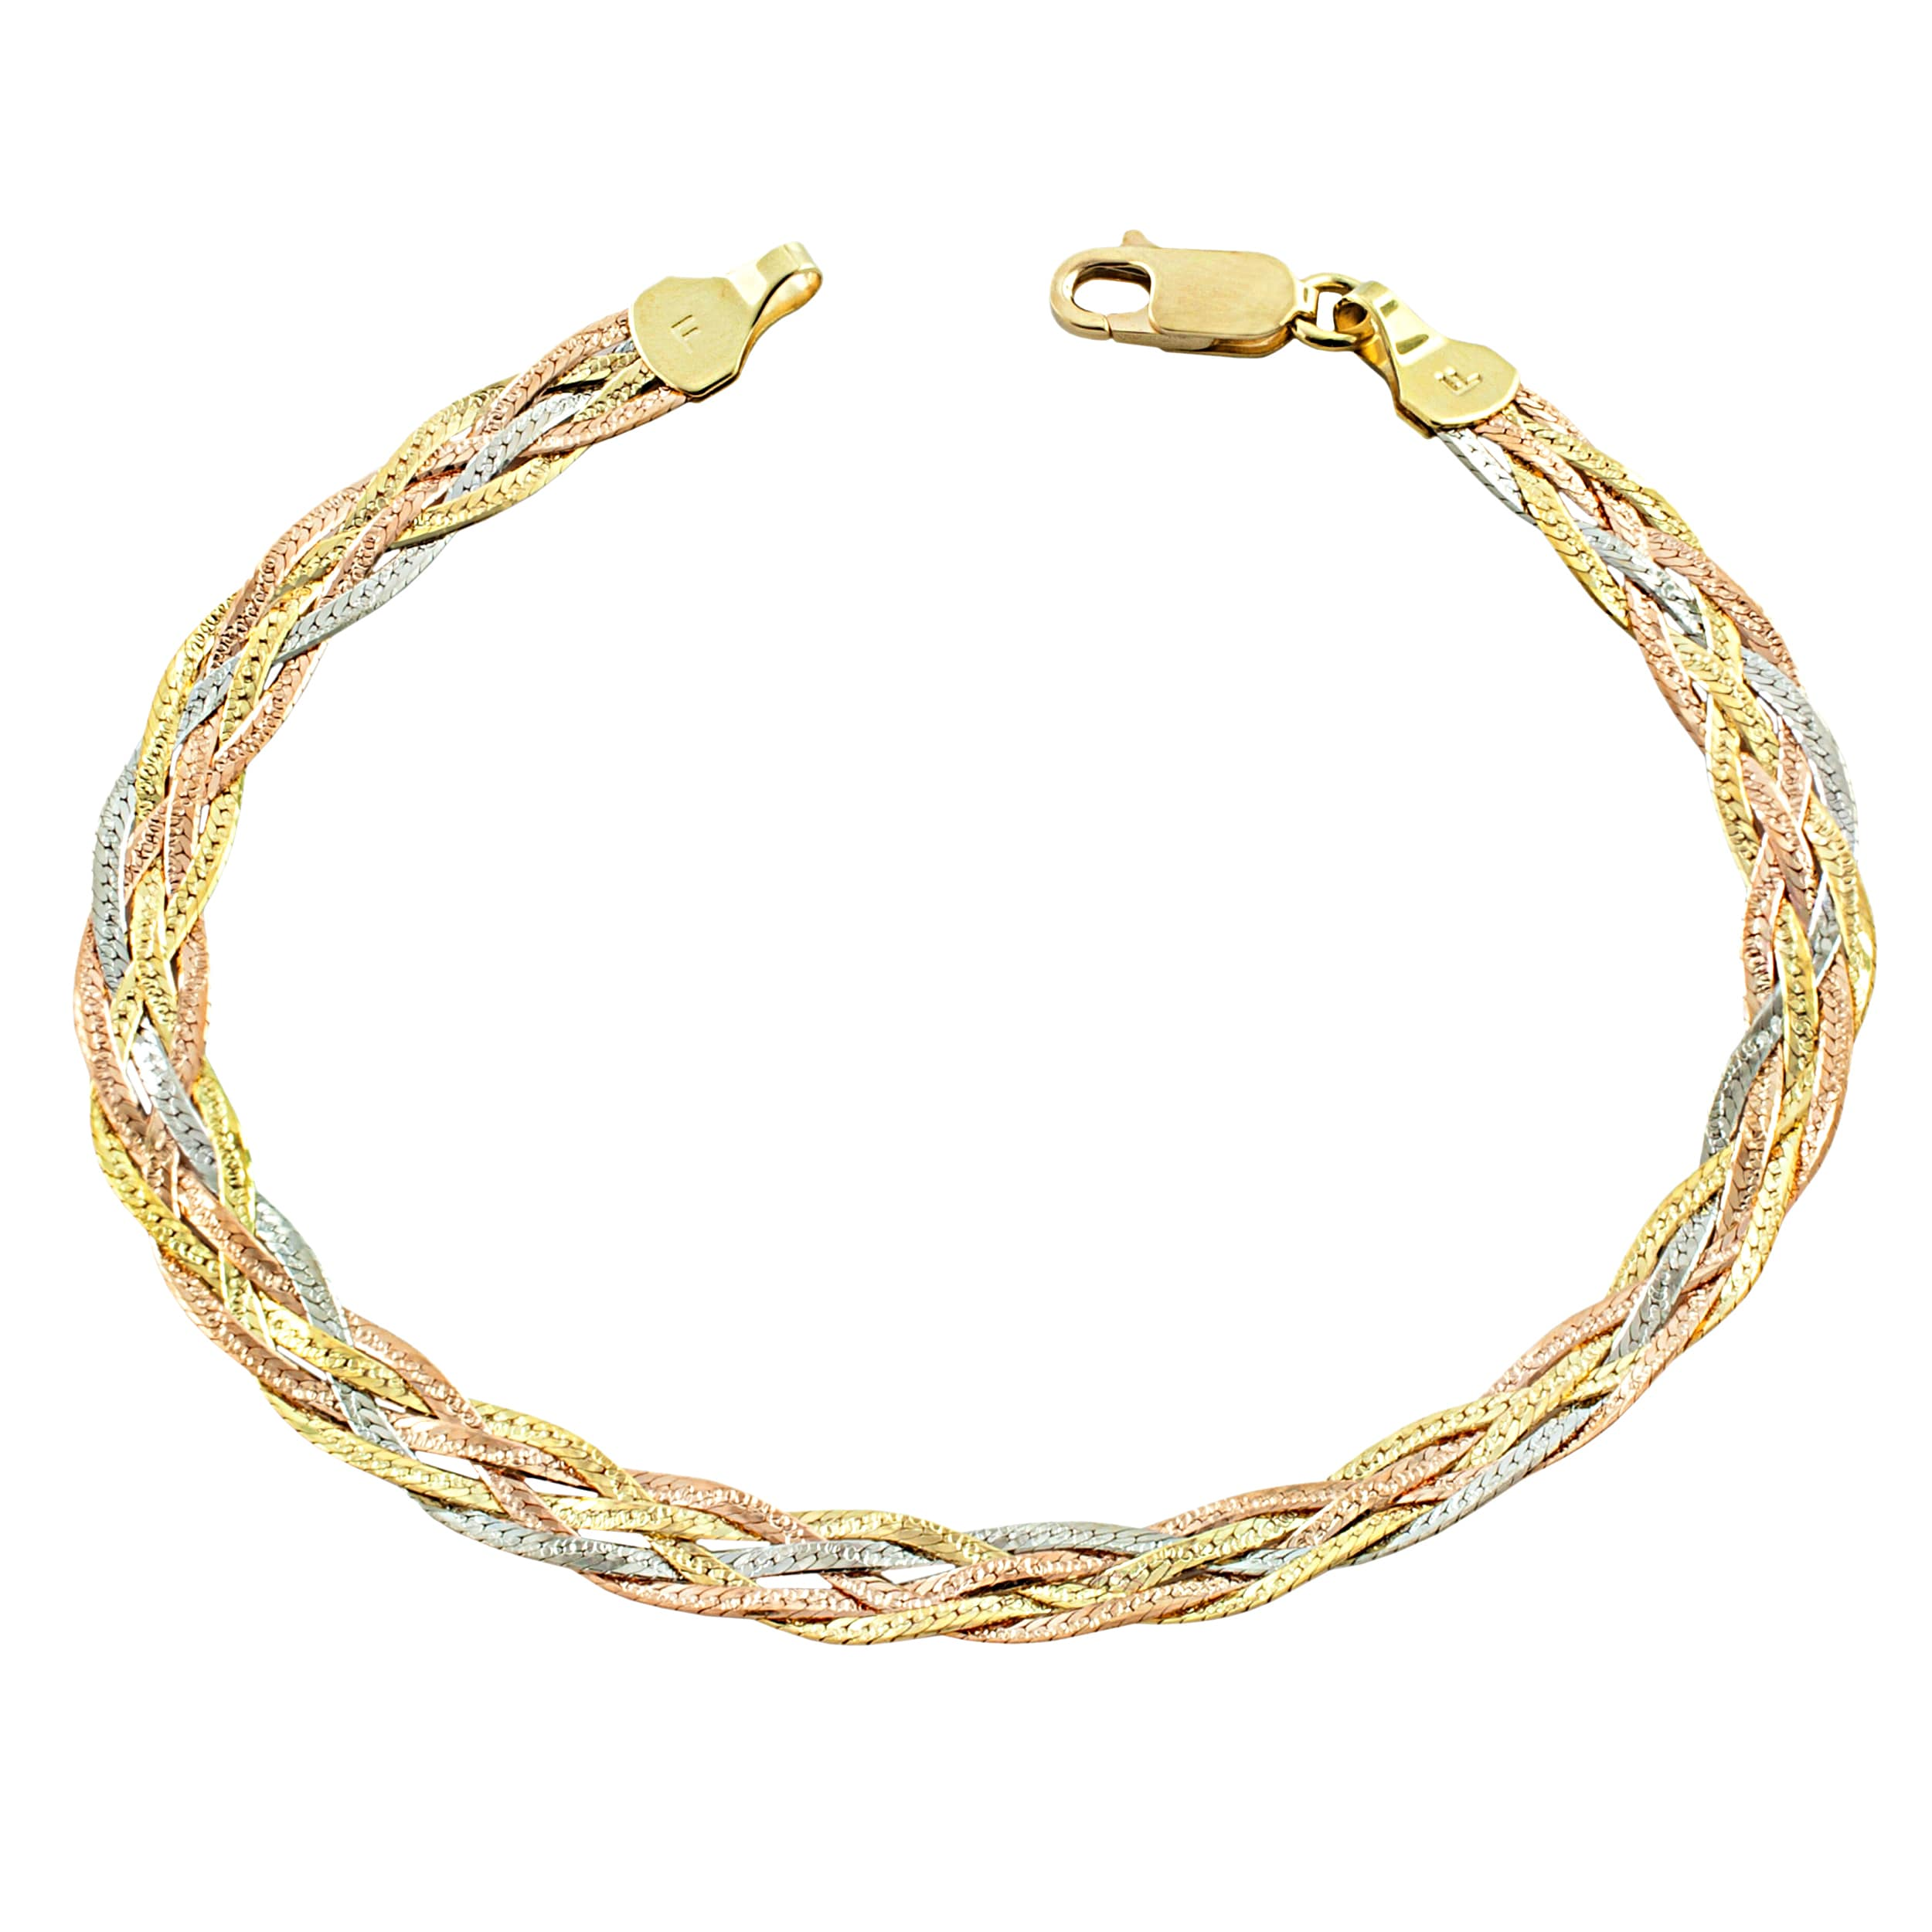 overstock karat gold free today watches bangles bangle product jewelry shipping polished hinged bracelets